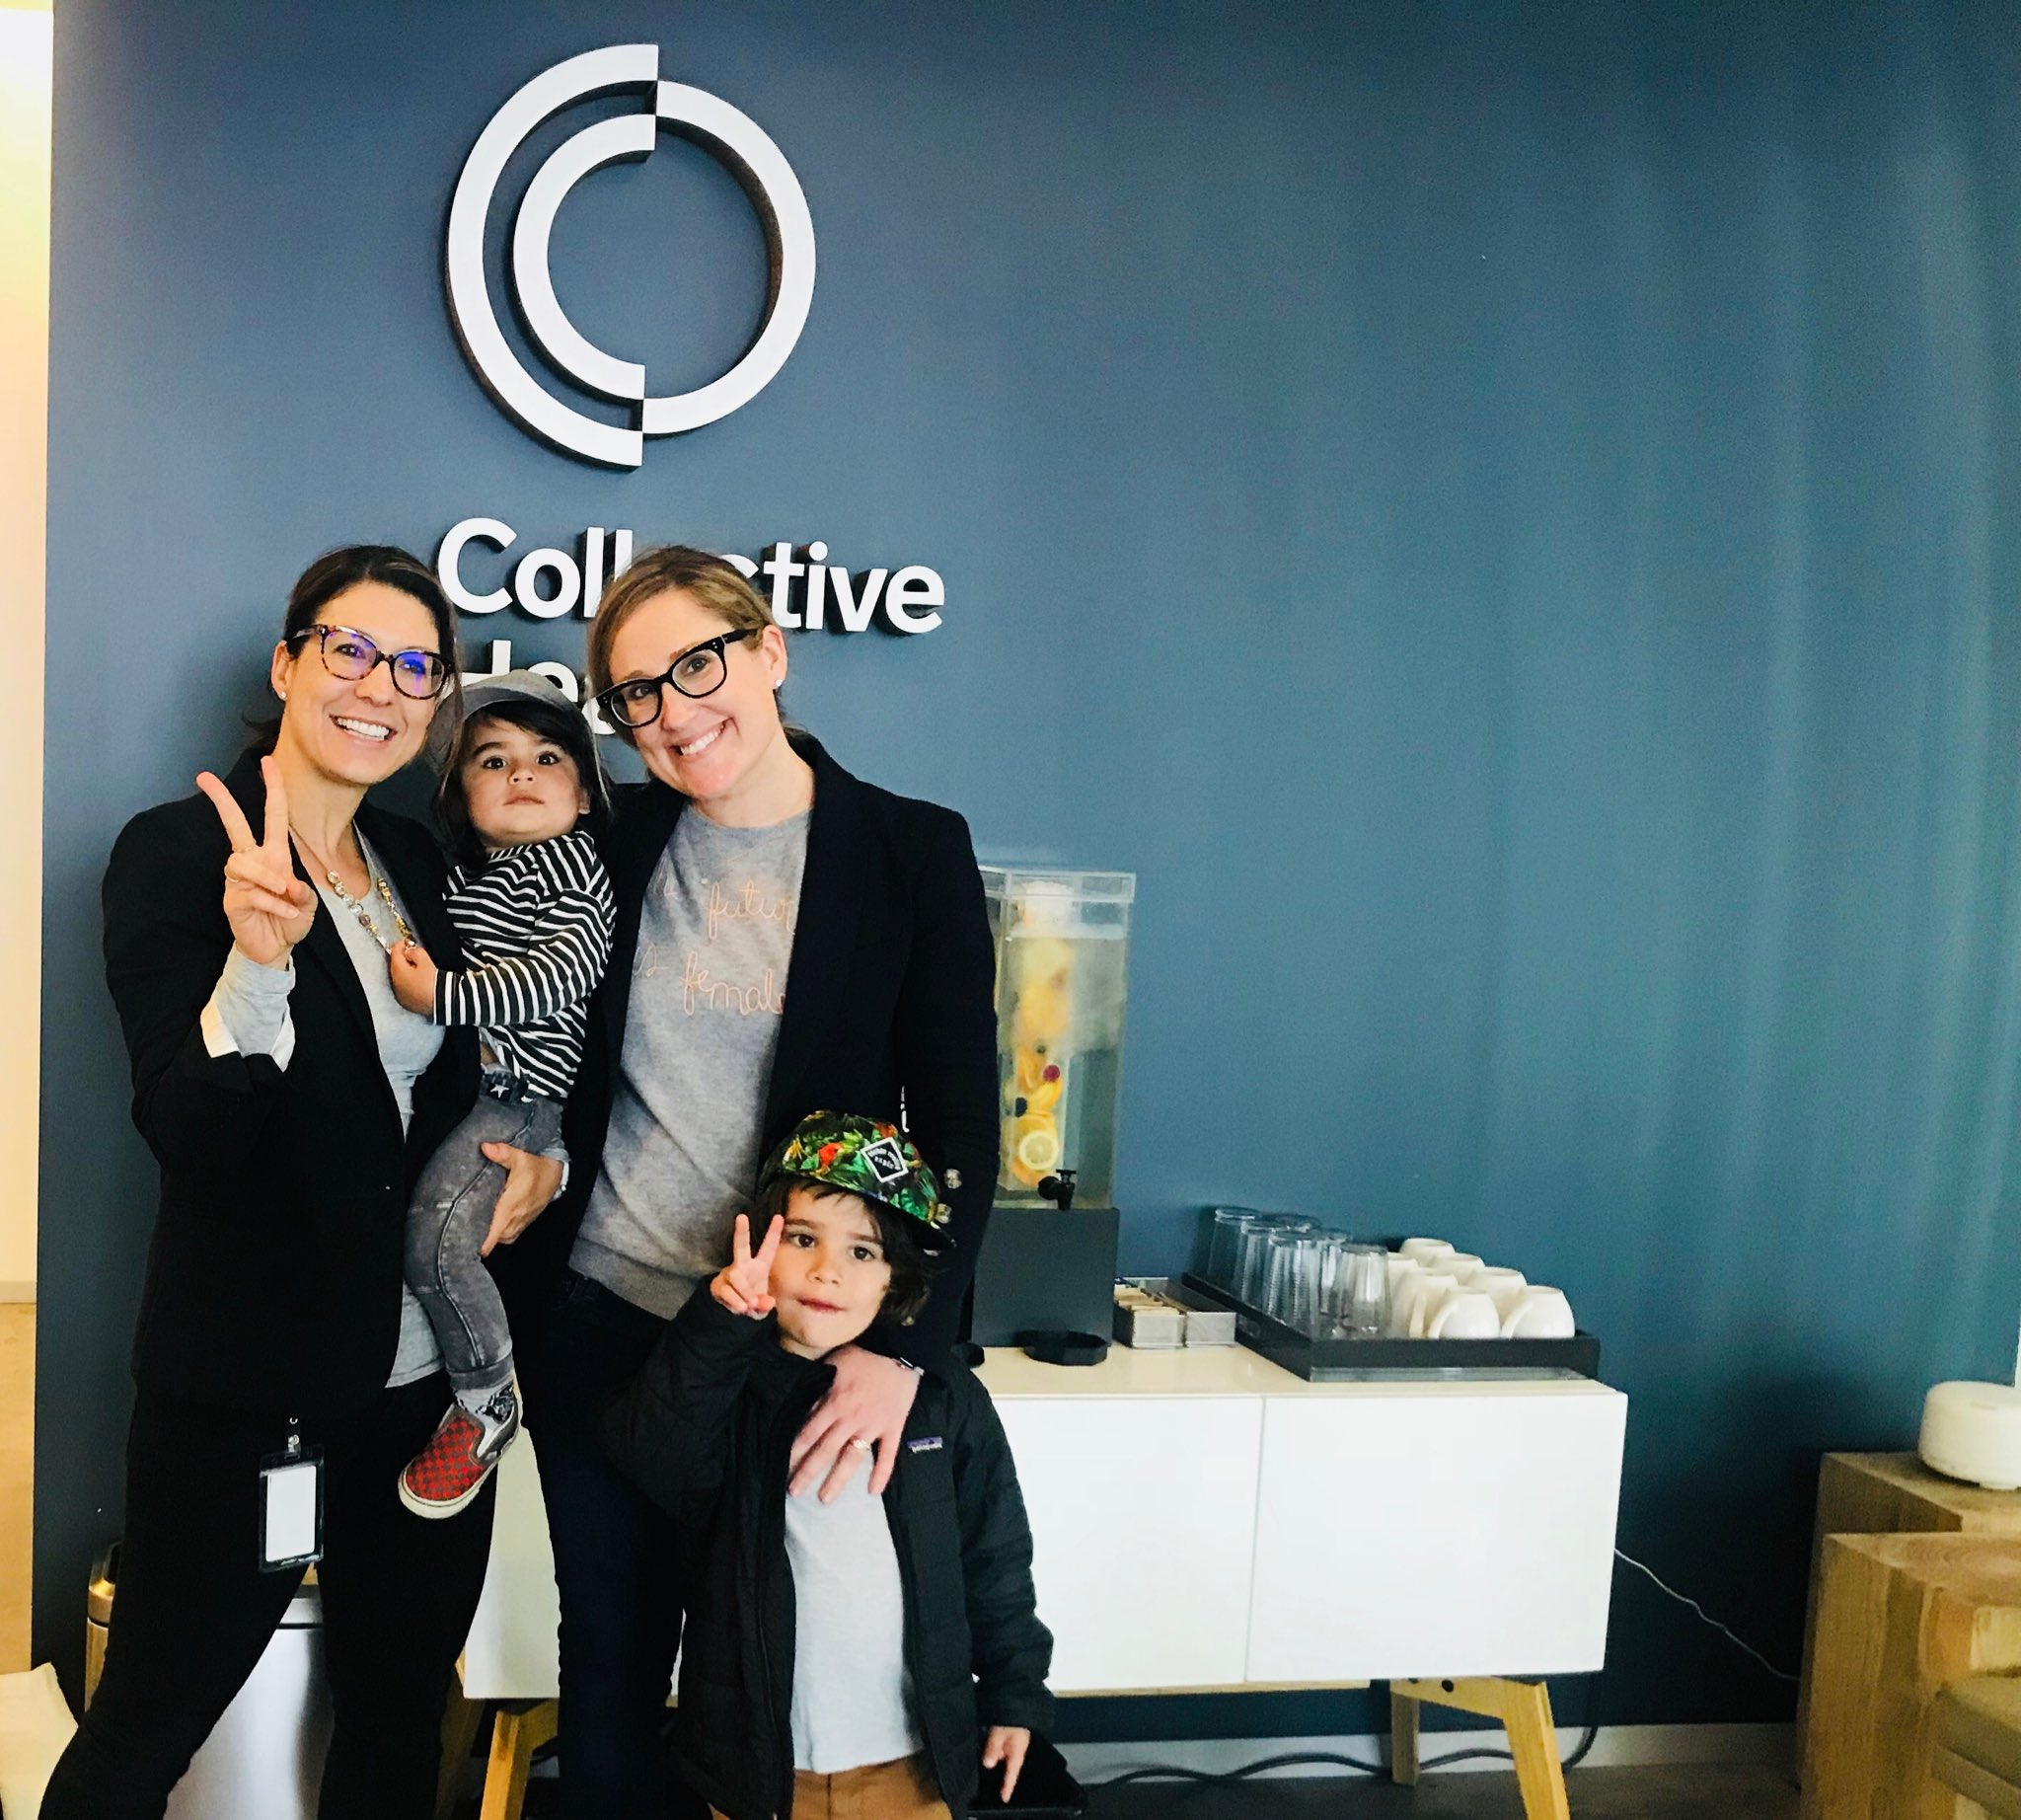 TFW my wolf cubs descend upon @Collective - note the massive amount of twinning with @thatjudegirl ✌����❤️ https://t.co/dXW19BNuJd